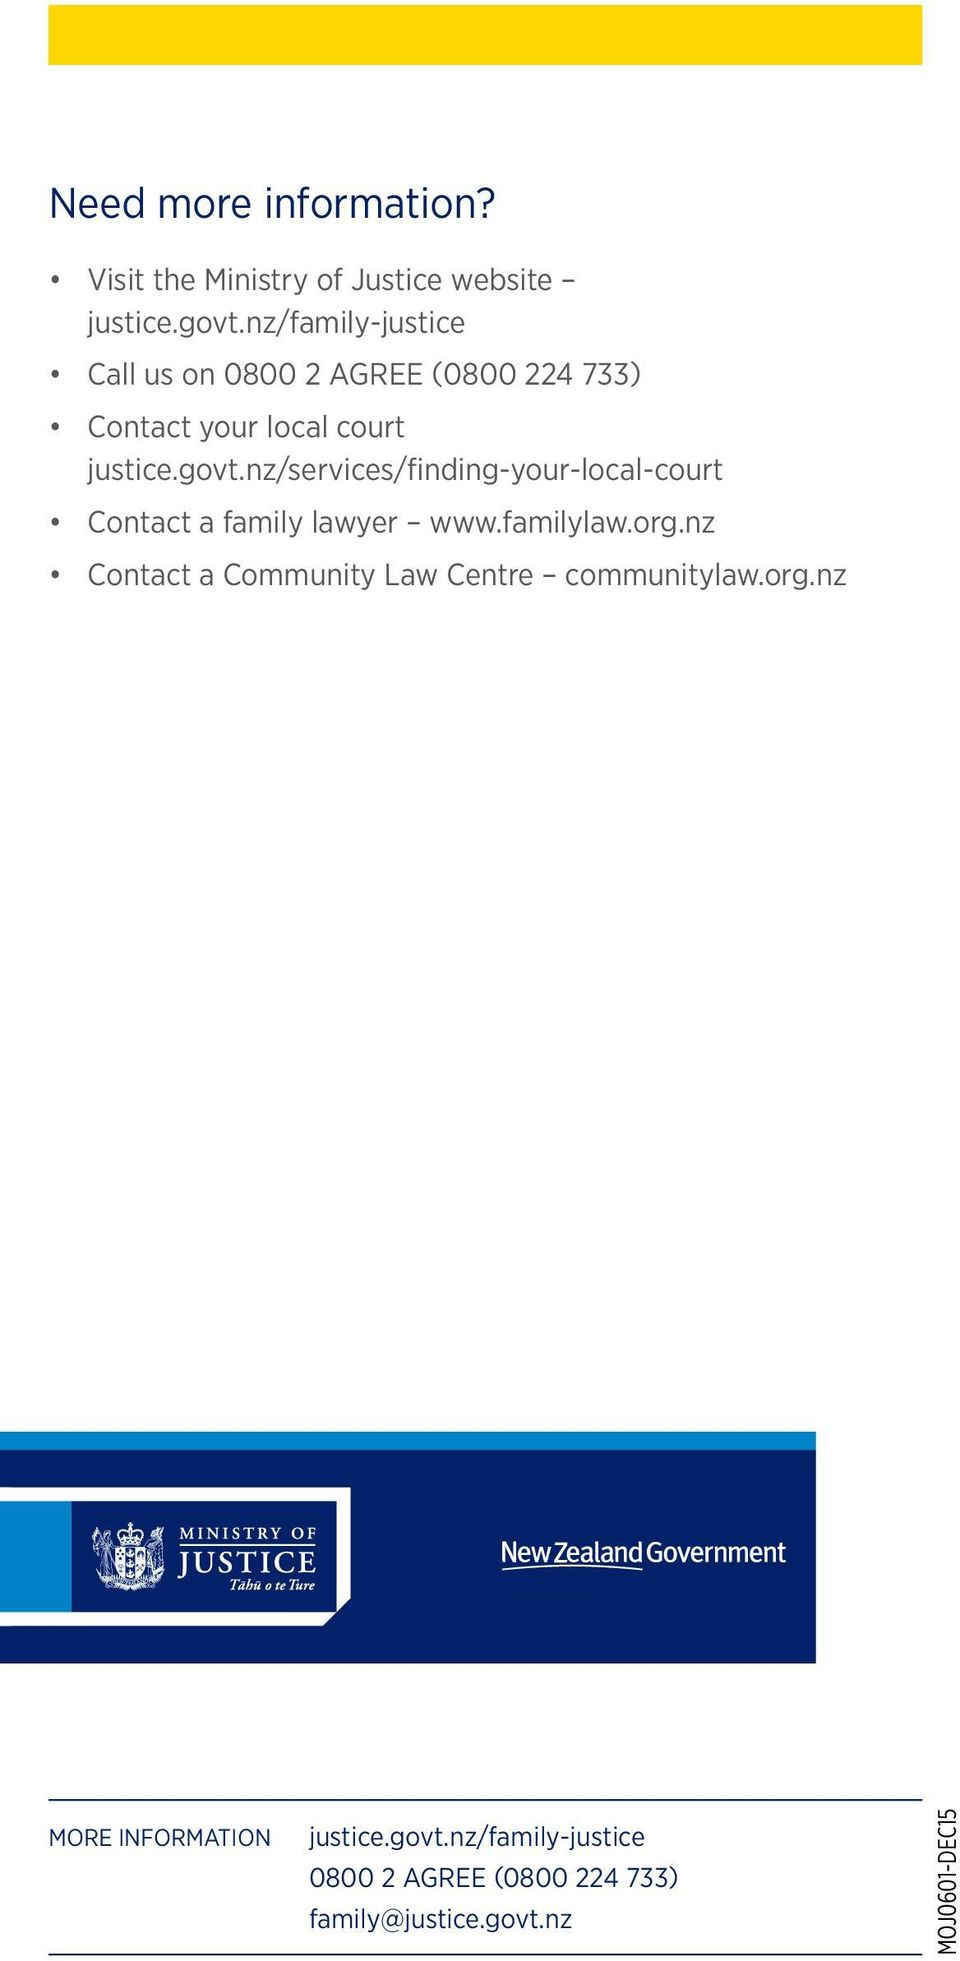 nz/services/finding-your-local-court Contact a family lawyer www.familylaw.org.